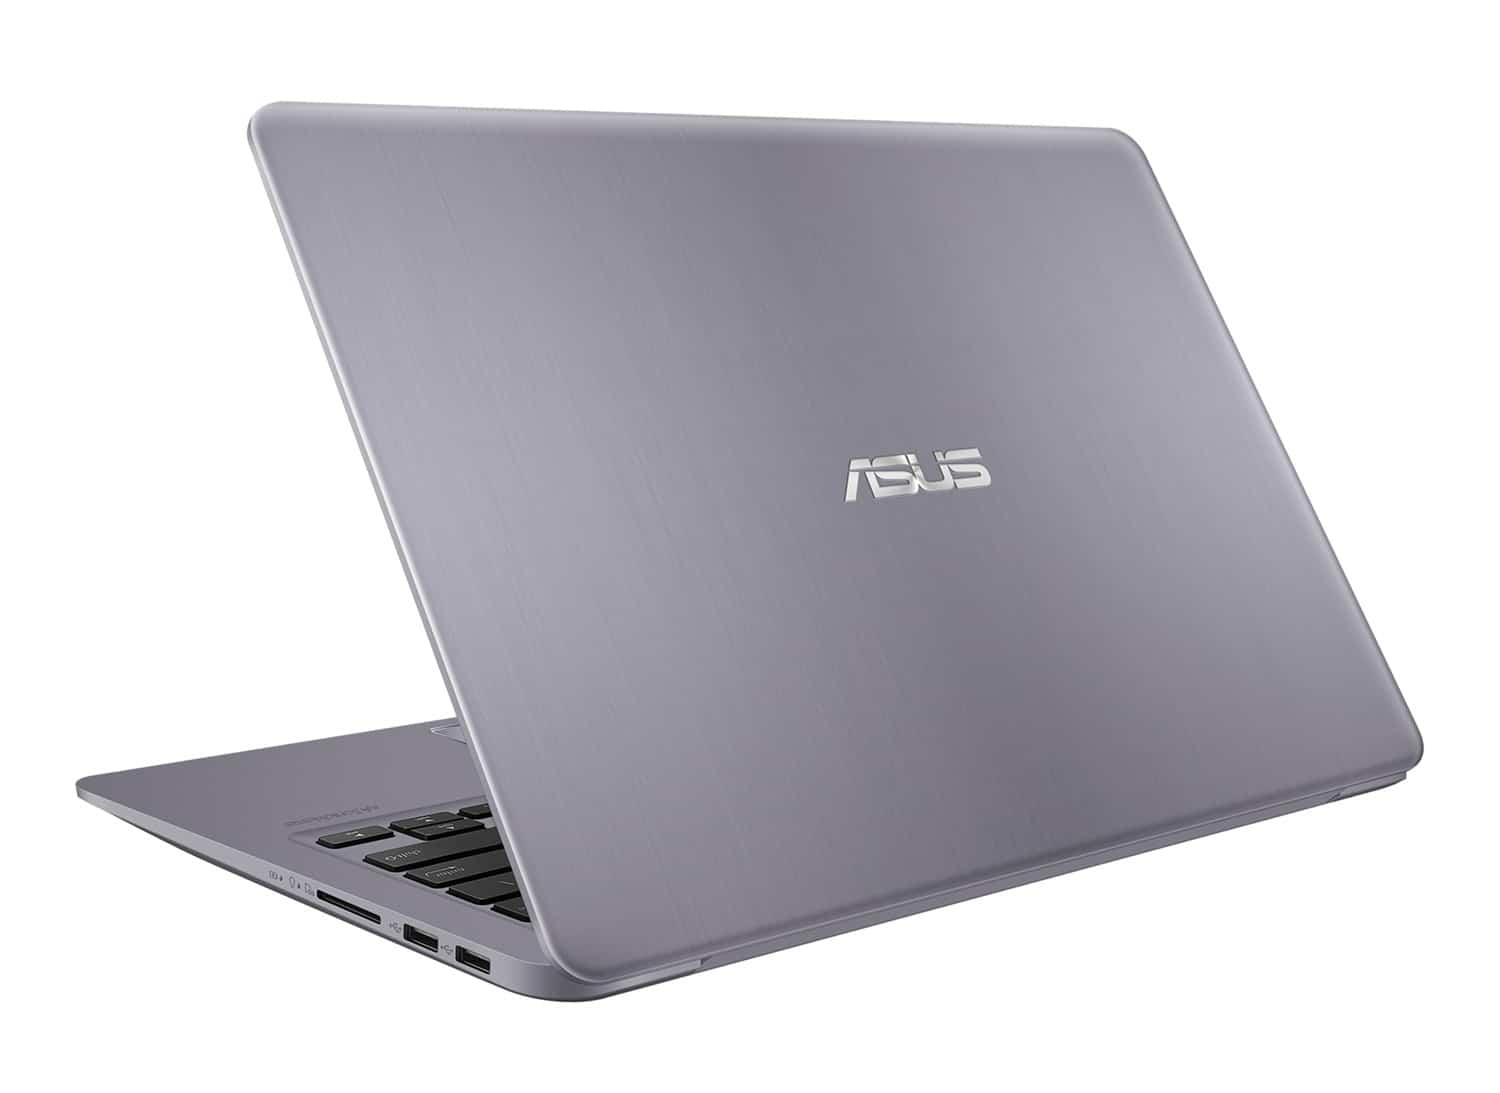 """Asus VivoBook S410UA-EB065T, ultrabook 14"""" SSD+HDD Kaby-R (599€)"""